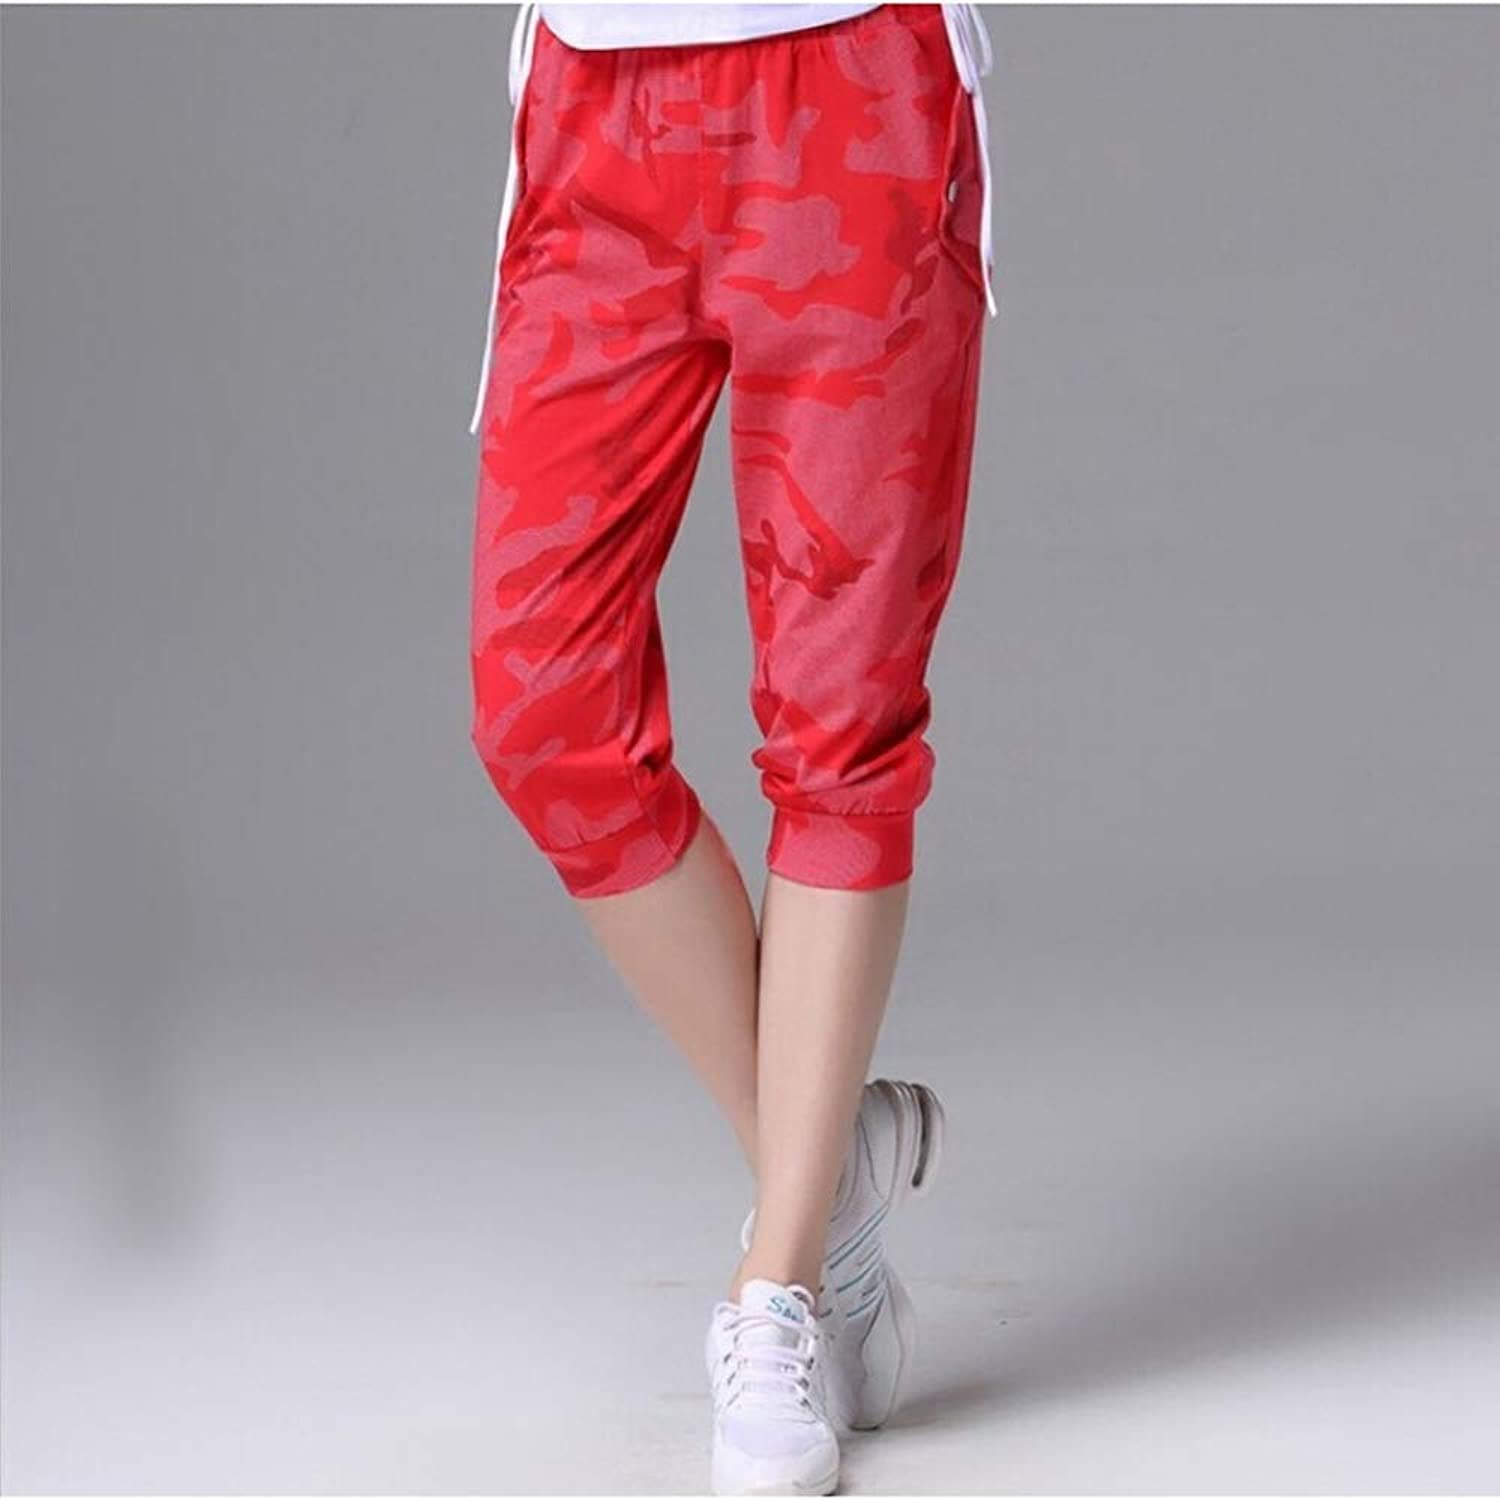 Xiao Jian Clothing Hip Hop Street Dance Pants Clothes Summer Dance Shirt Sports Dance Clothes Dancing unifom (color   O, Size   M)